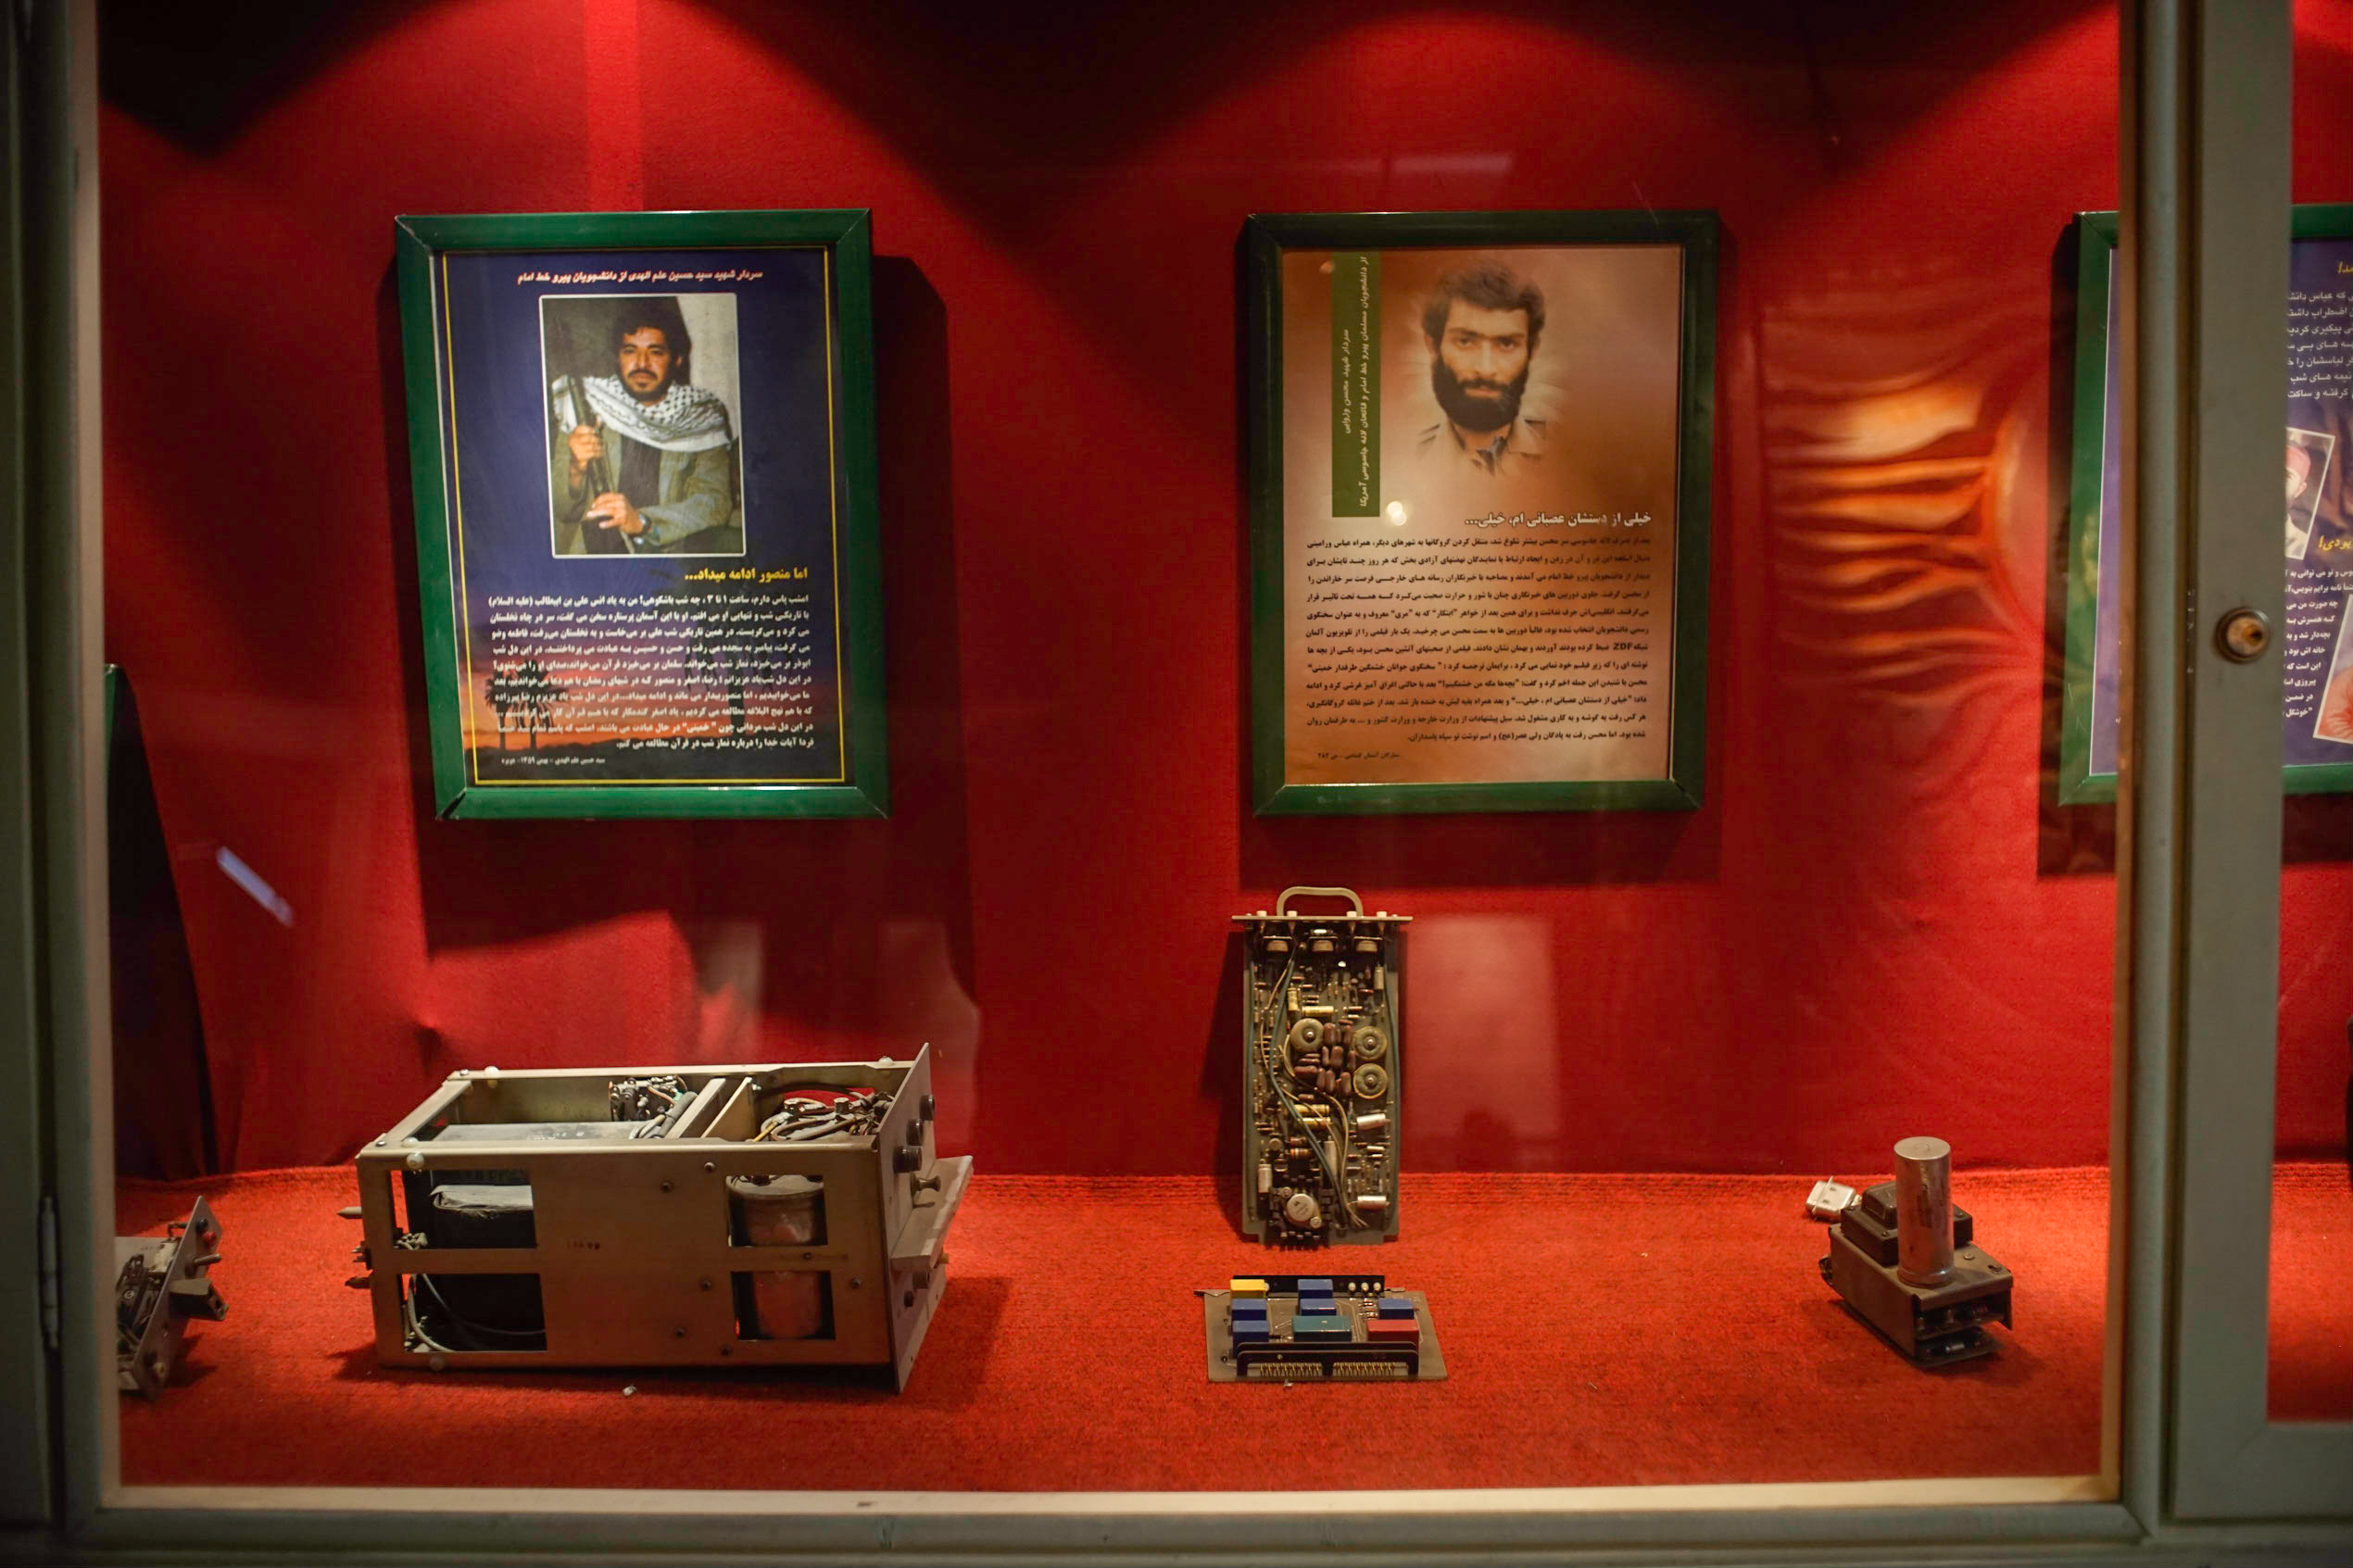 "More pieces of alleged surveillance equipment on display, along with posters celebrating certain  Iranian ""martyrs"" who, the posters claim, participated both in the takeover of the embassy and then later died fighting the Iraqis during the 1980's Iran-Iraq war."